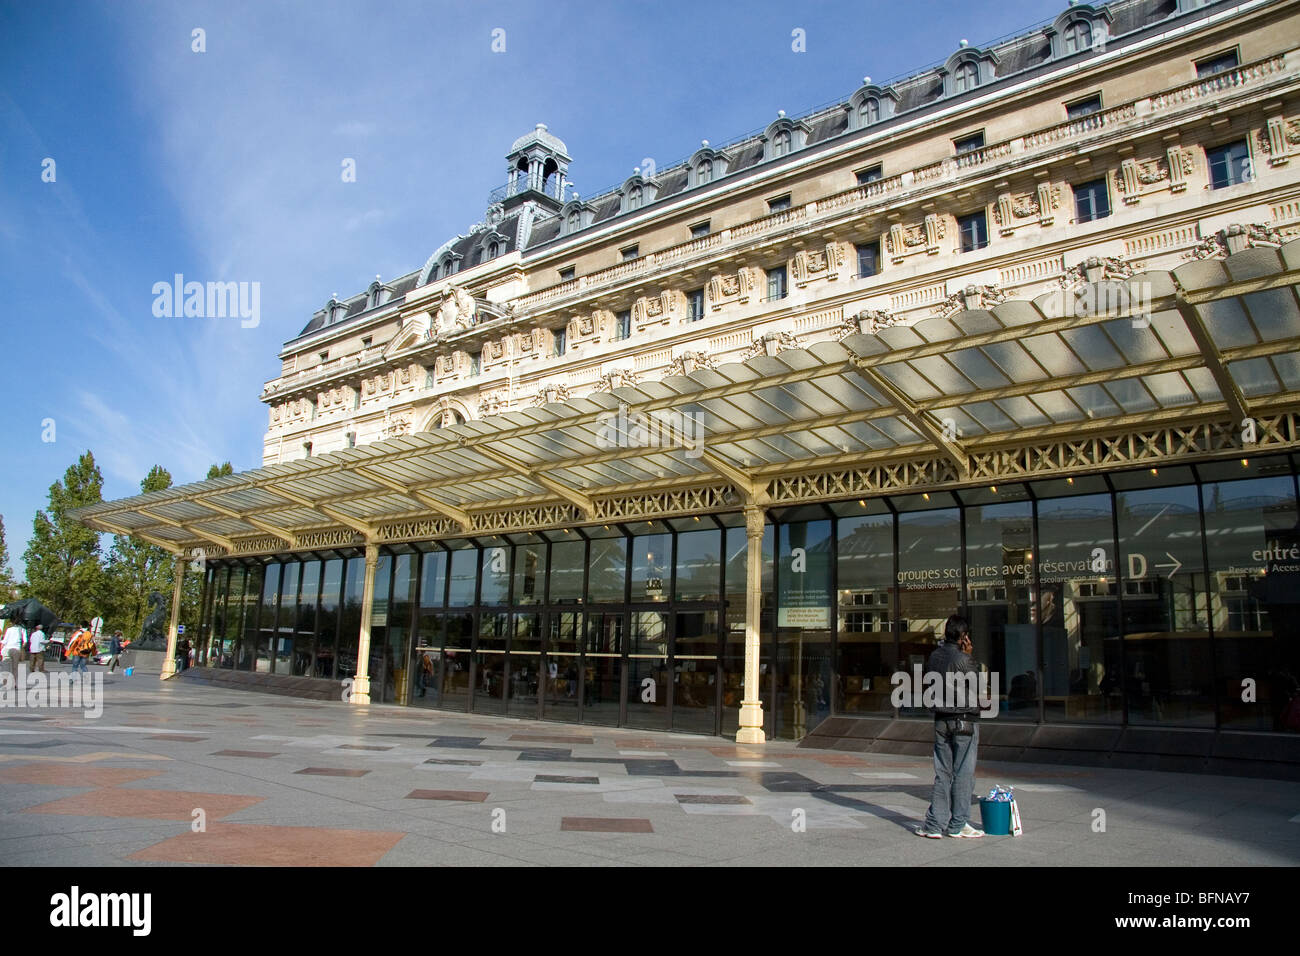 Exterior of the Musee d'Orsay in Paris, France. - Stock Image